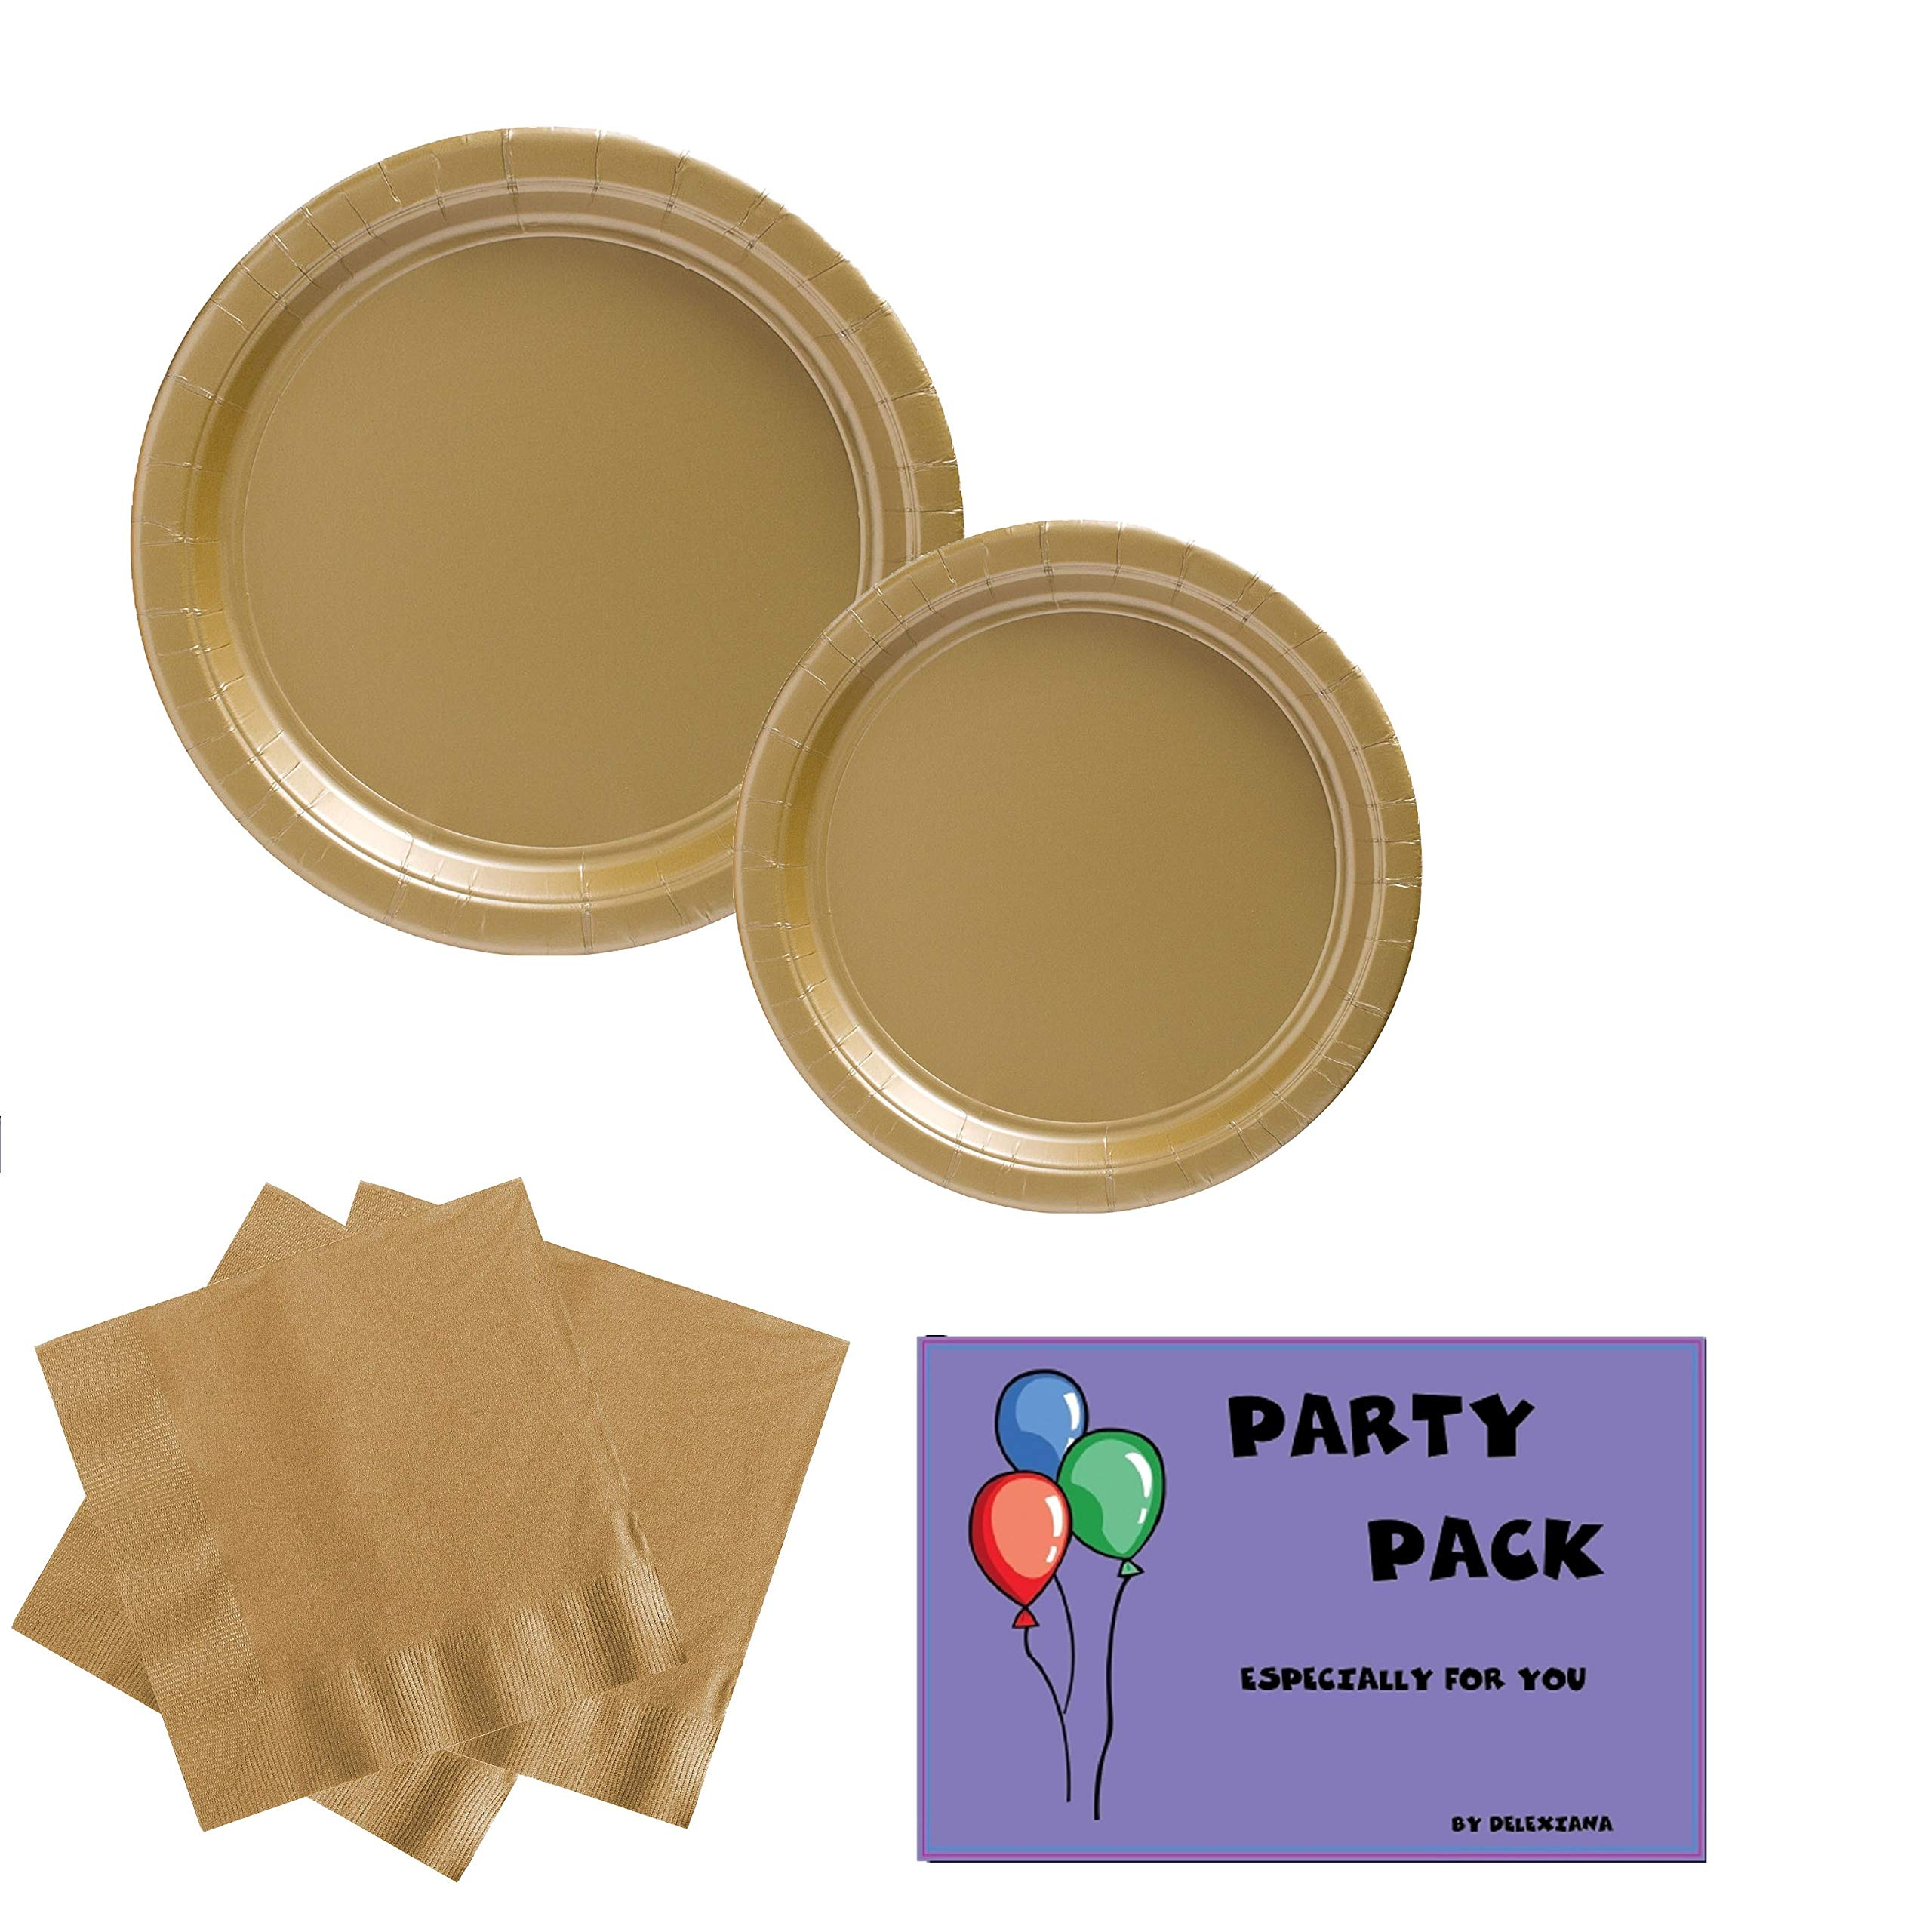 Amscan Big Party Supplies Pack Solid Gold Color Bundle set for 50 Guests 9'' Dinner Paper Plates, 7'' Luncheon Paper Plates and, 2-ply Luncheon Napkins with a Complementary Recipe Card